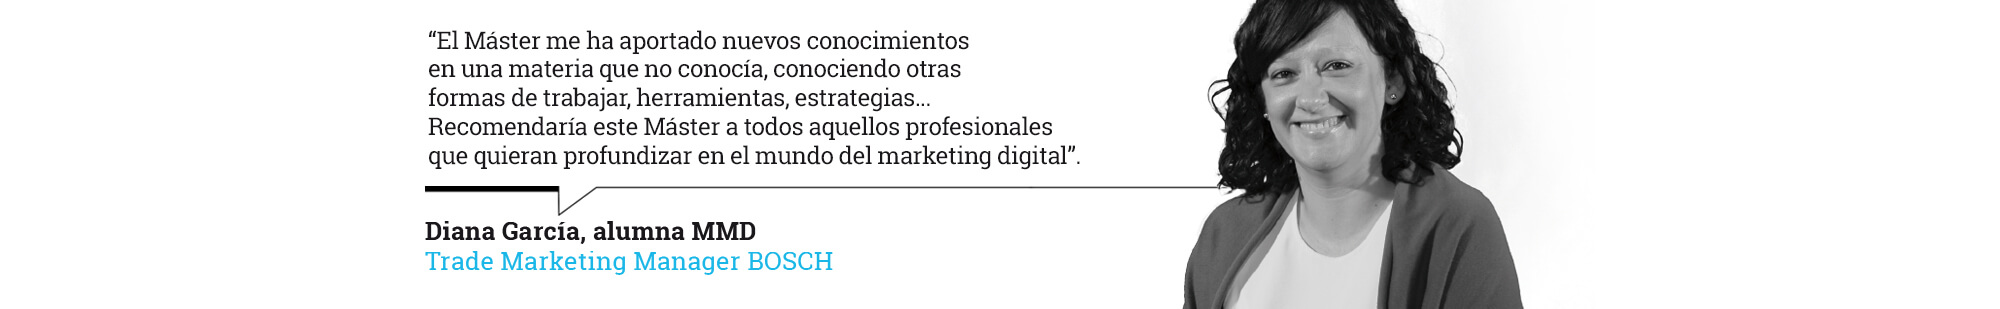 Máster de Marketing Digital - Diana García, alumna